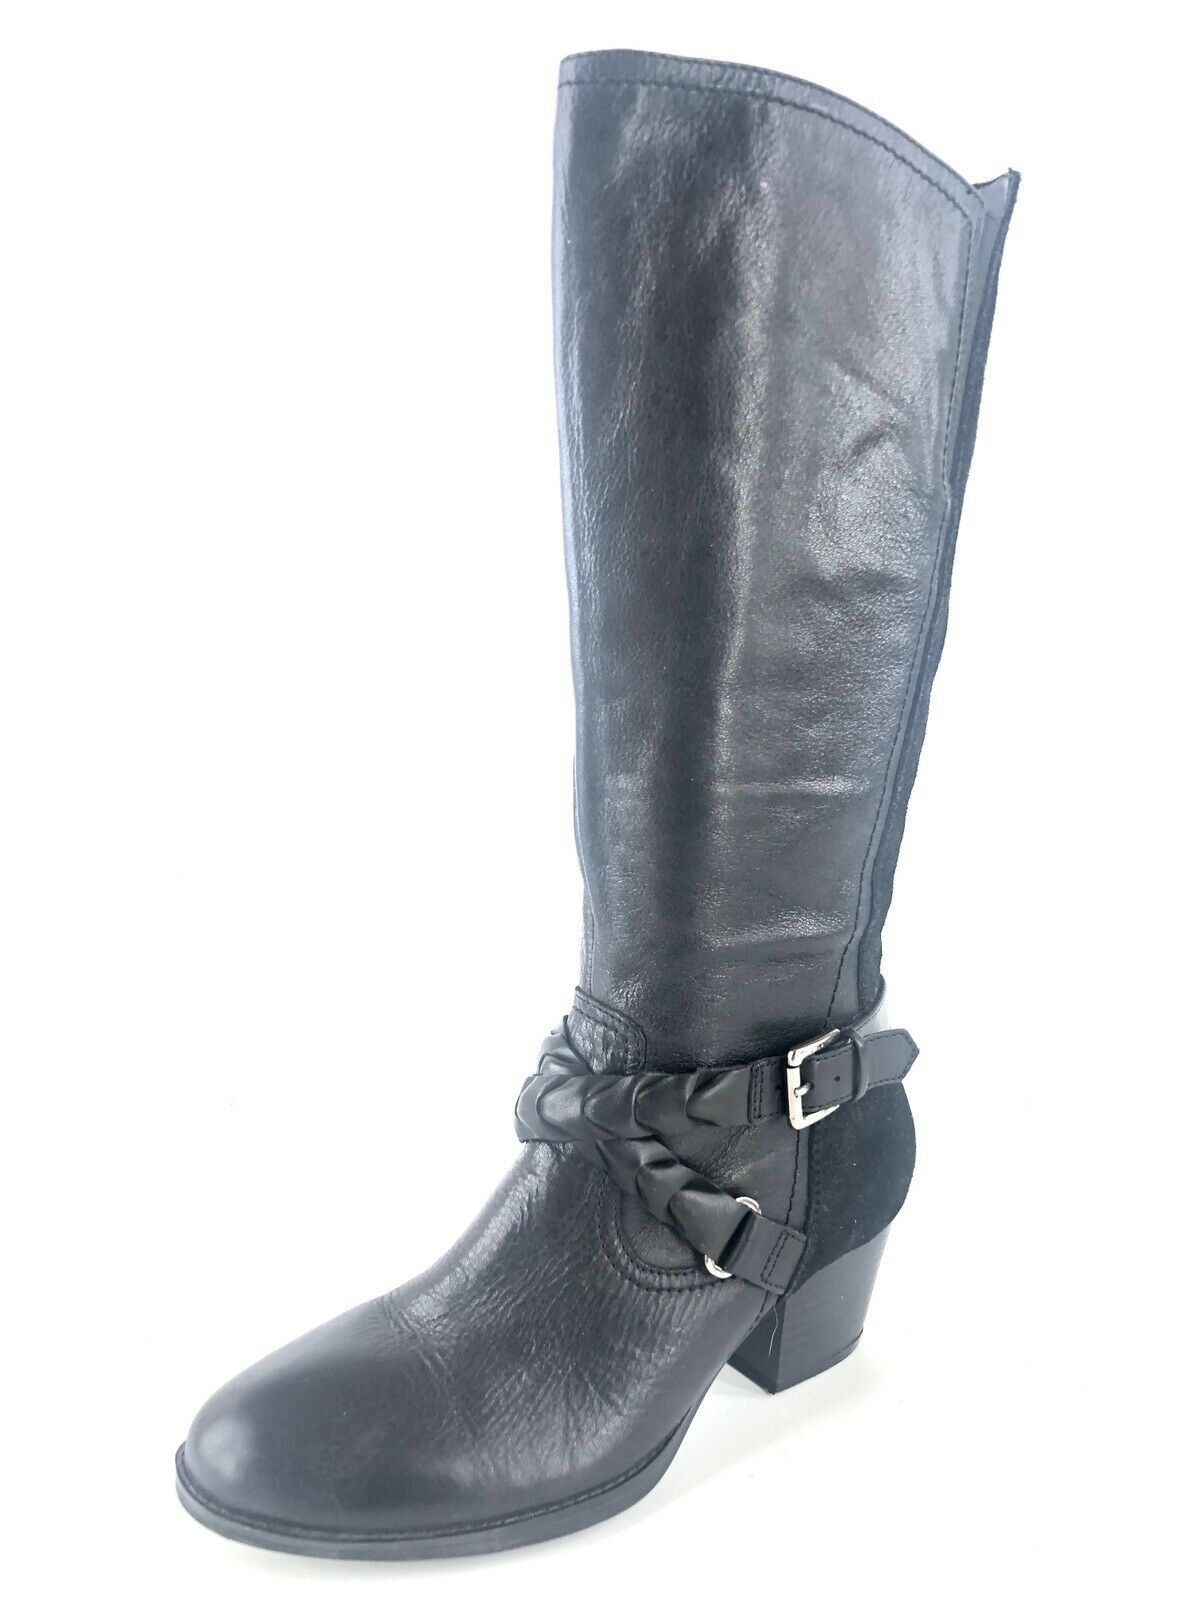 Earth Orchard Buckle Leather Black Boots Knee High Size 7.5 M